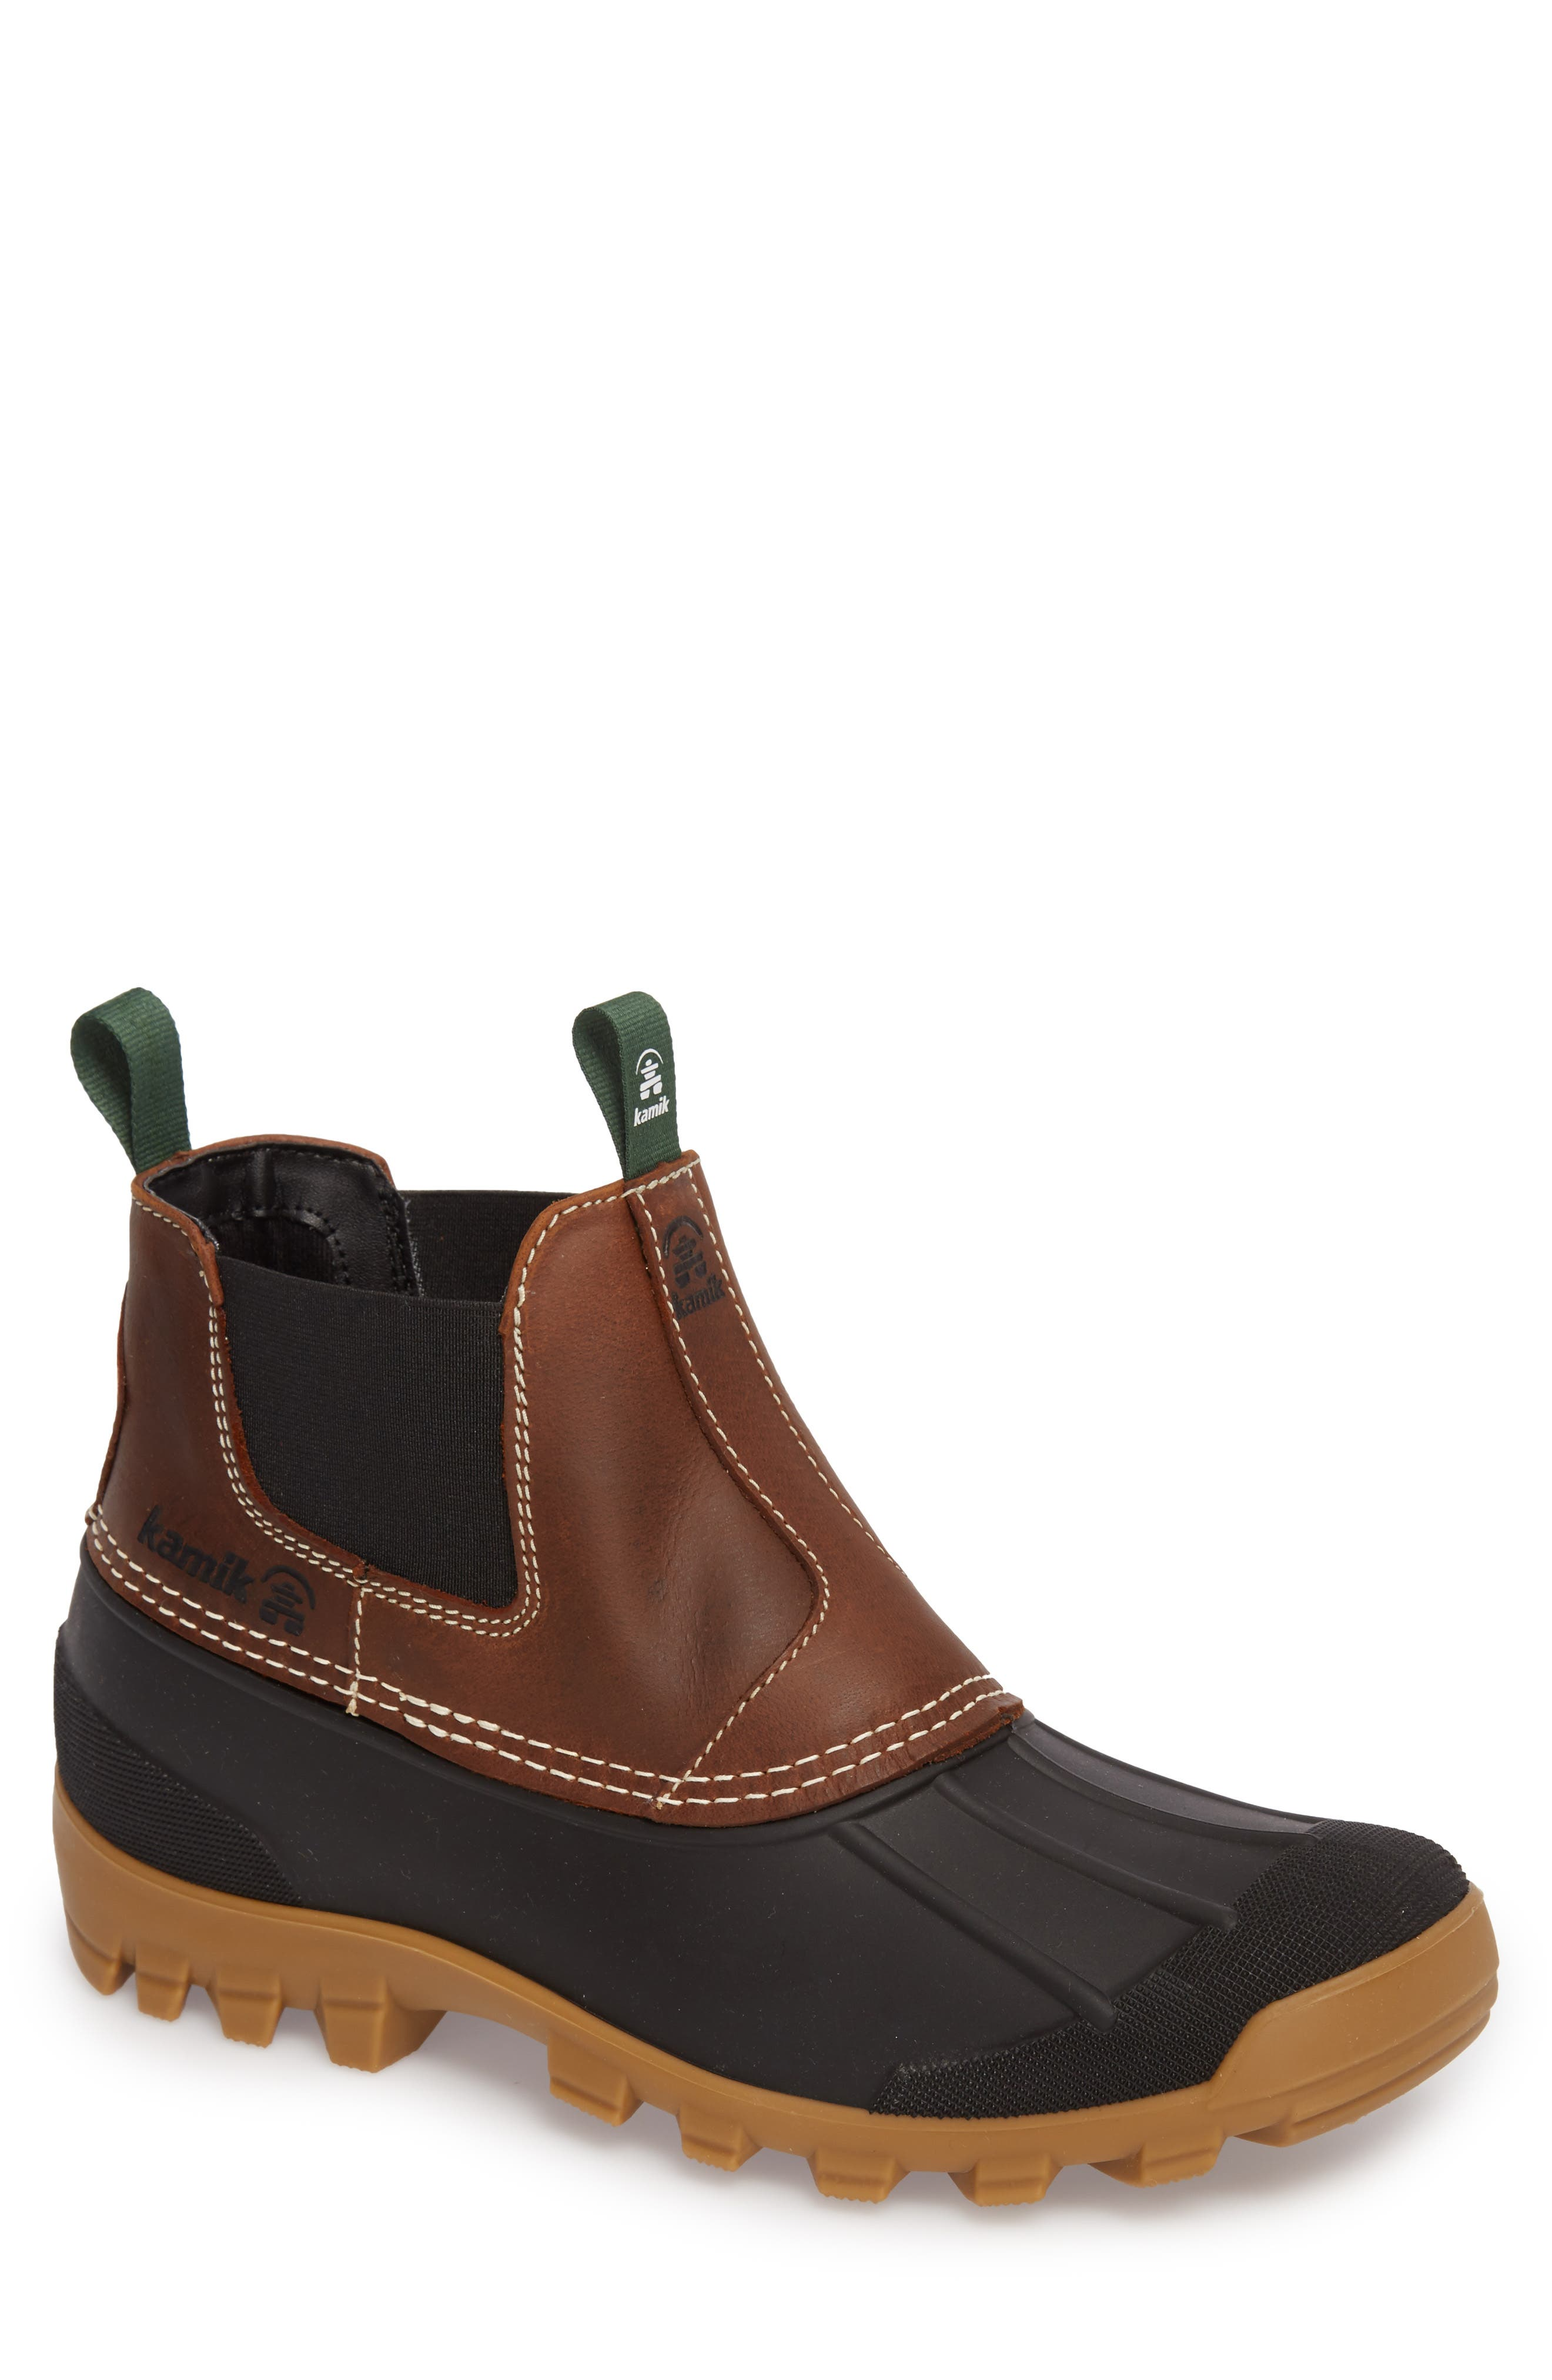 Yukon Chelsea Boot,                         Main,                         color, DARK BROWN LEATHER